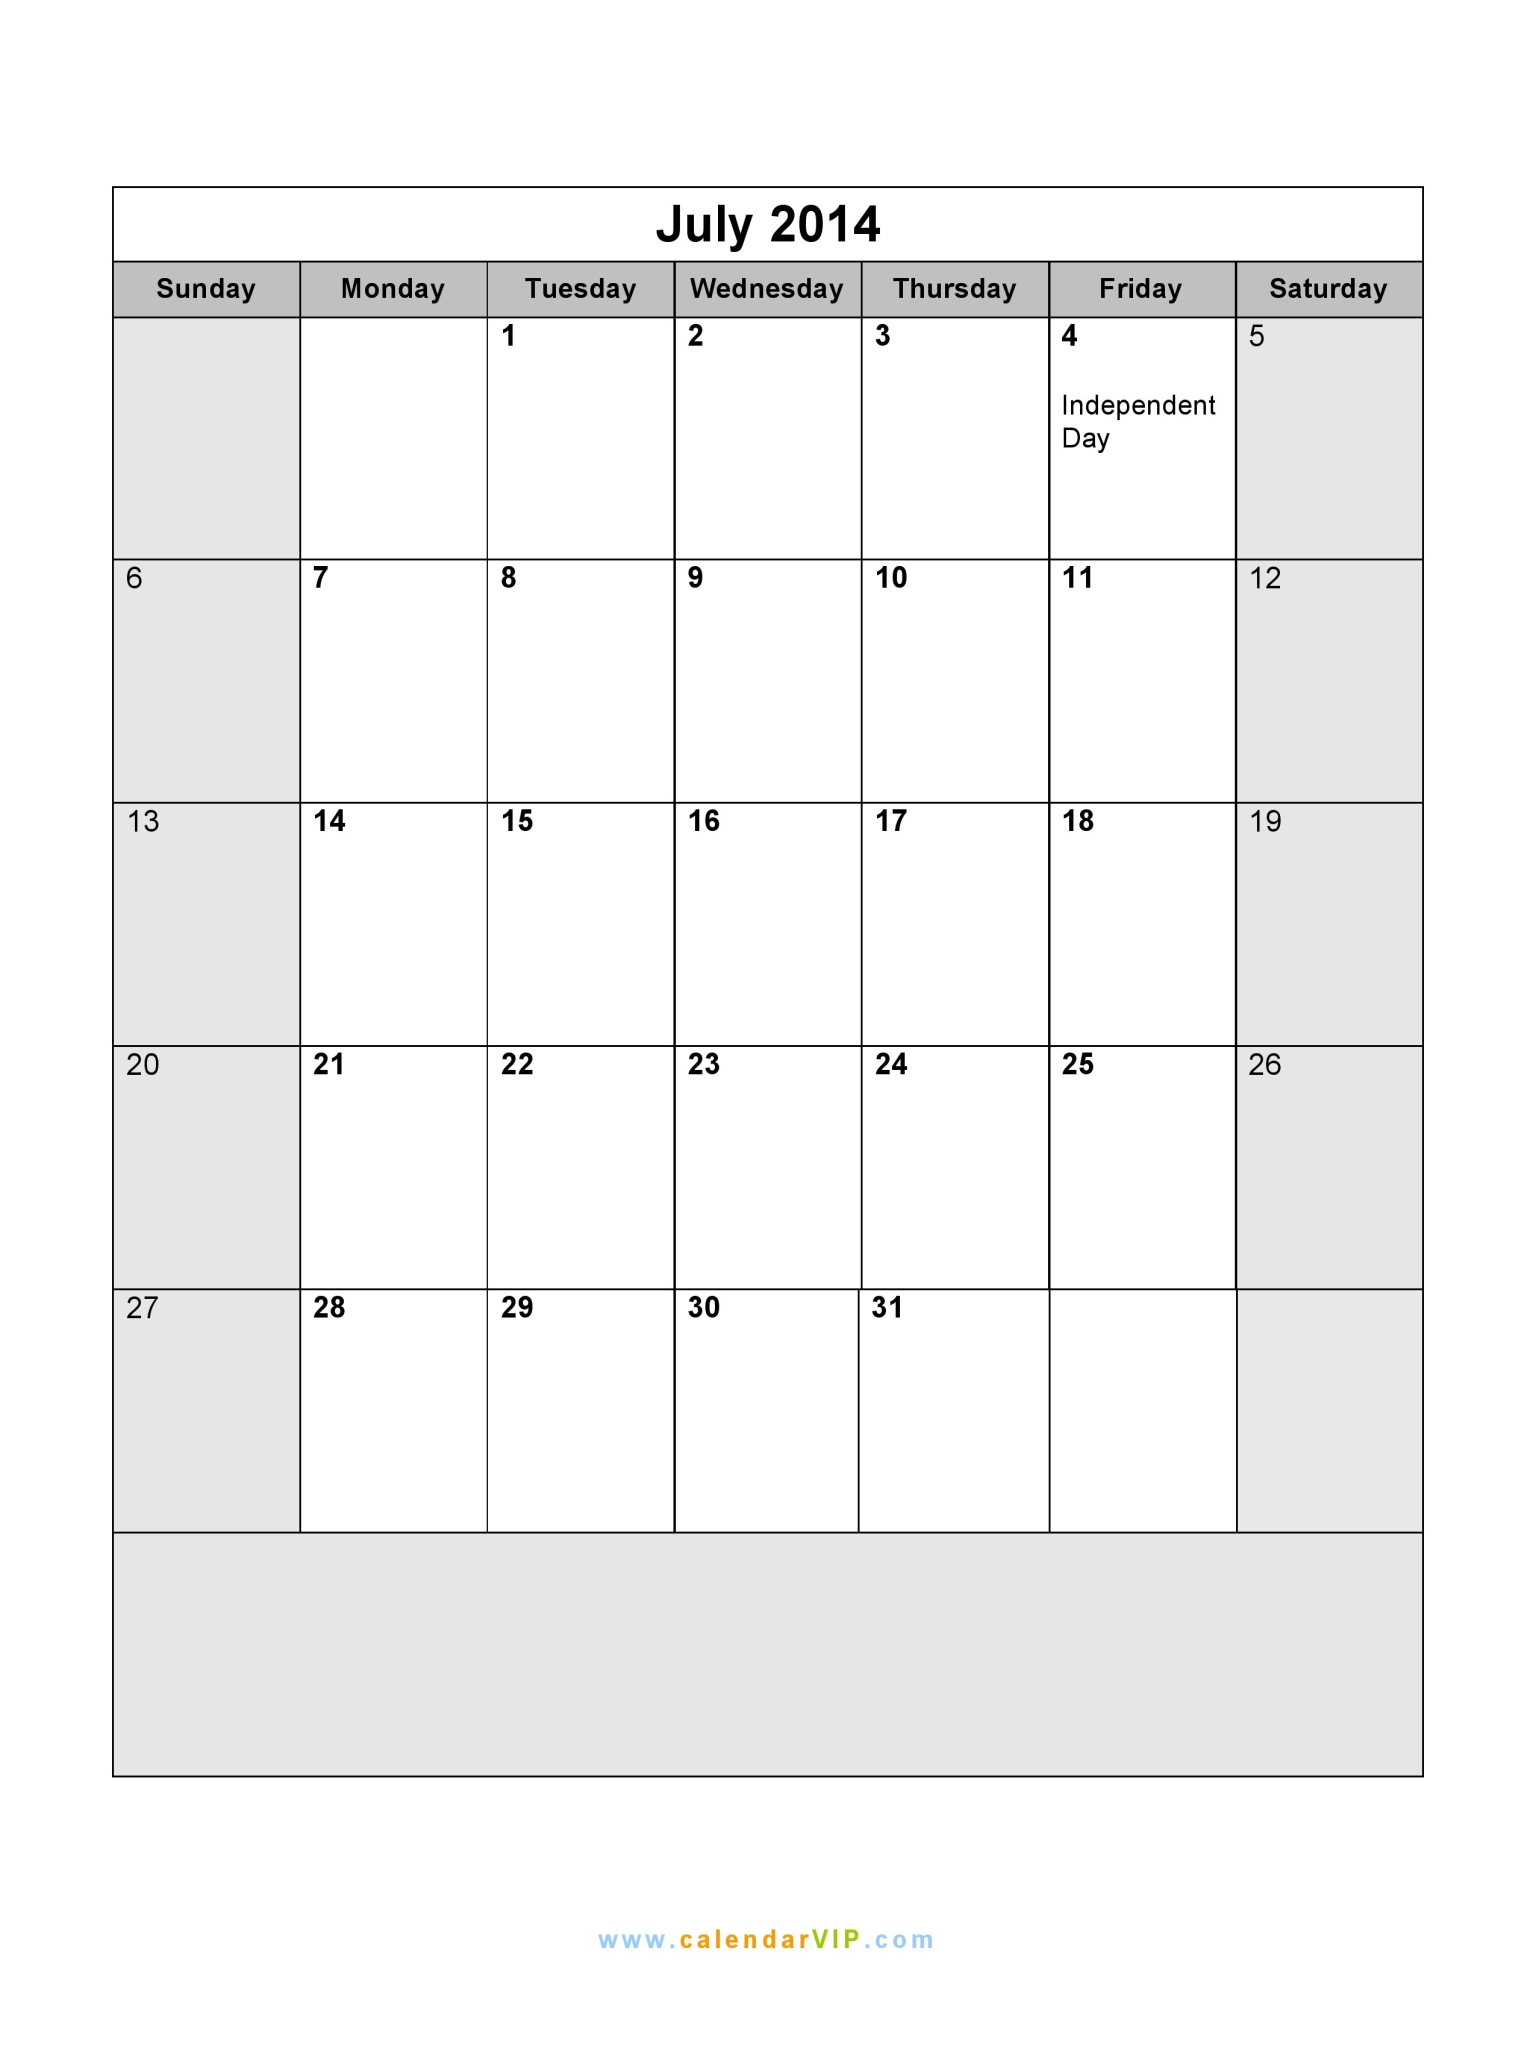 July 2014 Calendar Blank Printable Calendar Template In Pdf Word Excel